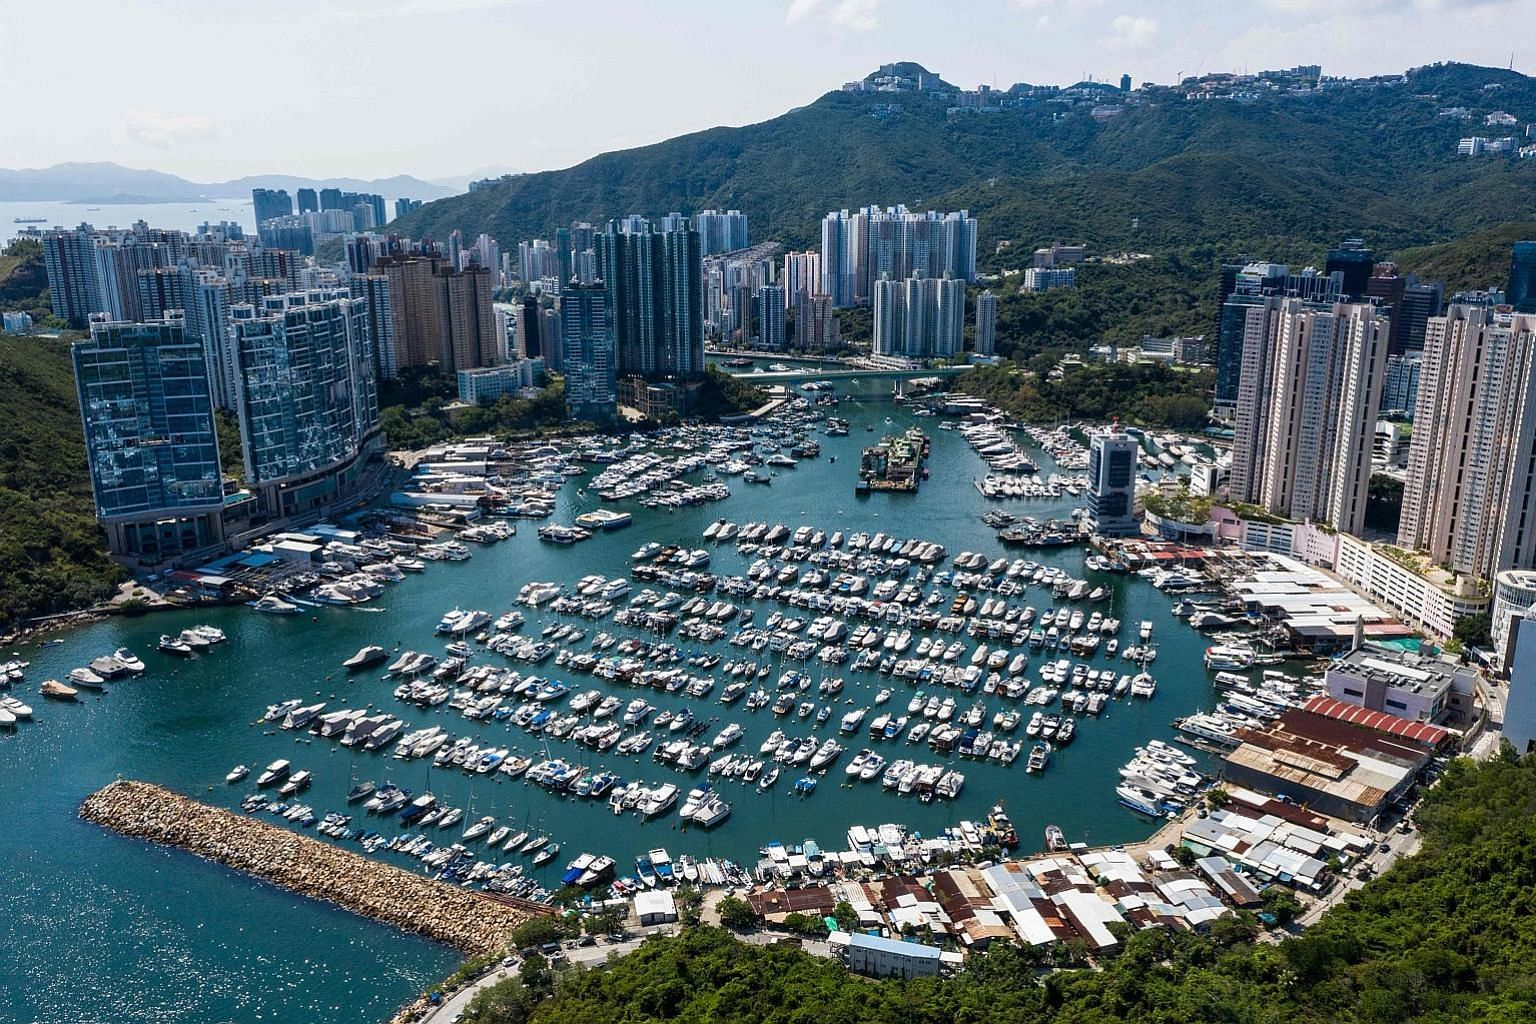 Residential buildings in Aberdeen Harbour, Hong Kong. Gains in home prices were helped by low interest rates and pent-up demand as the economy gradually picked up after the Covid-19 outbreak. PHOTO: AGENCE FRANCE-PRESSE